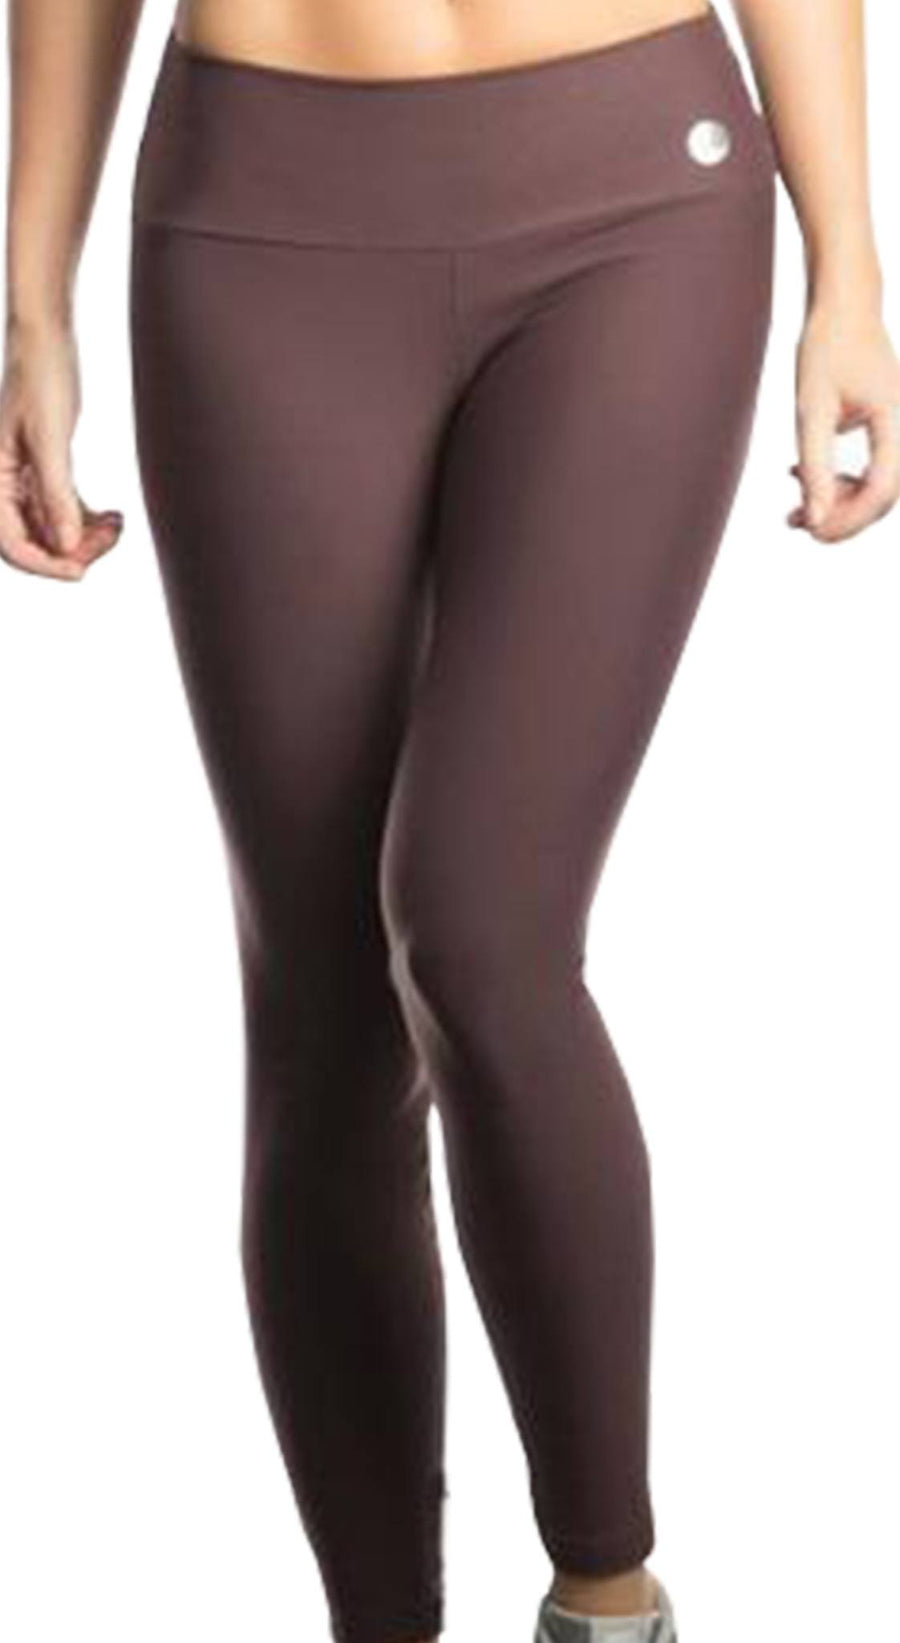 Workout Legging - Spot Brown or Orange